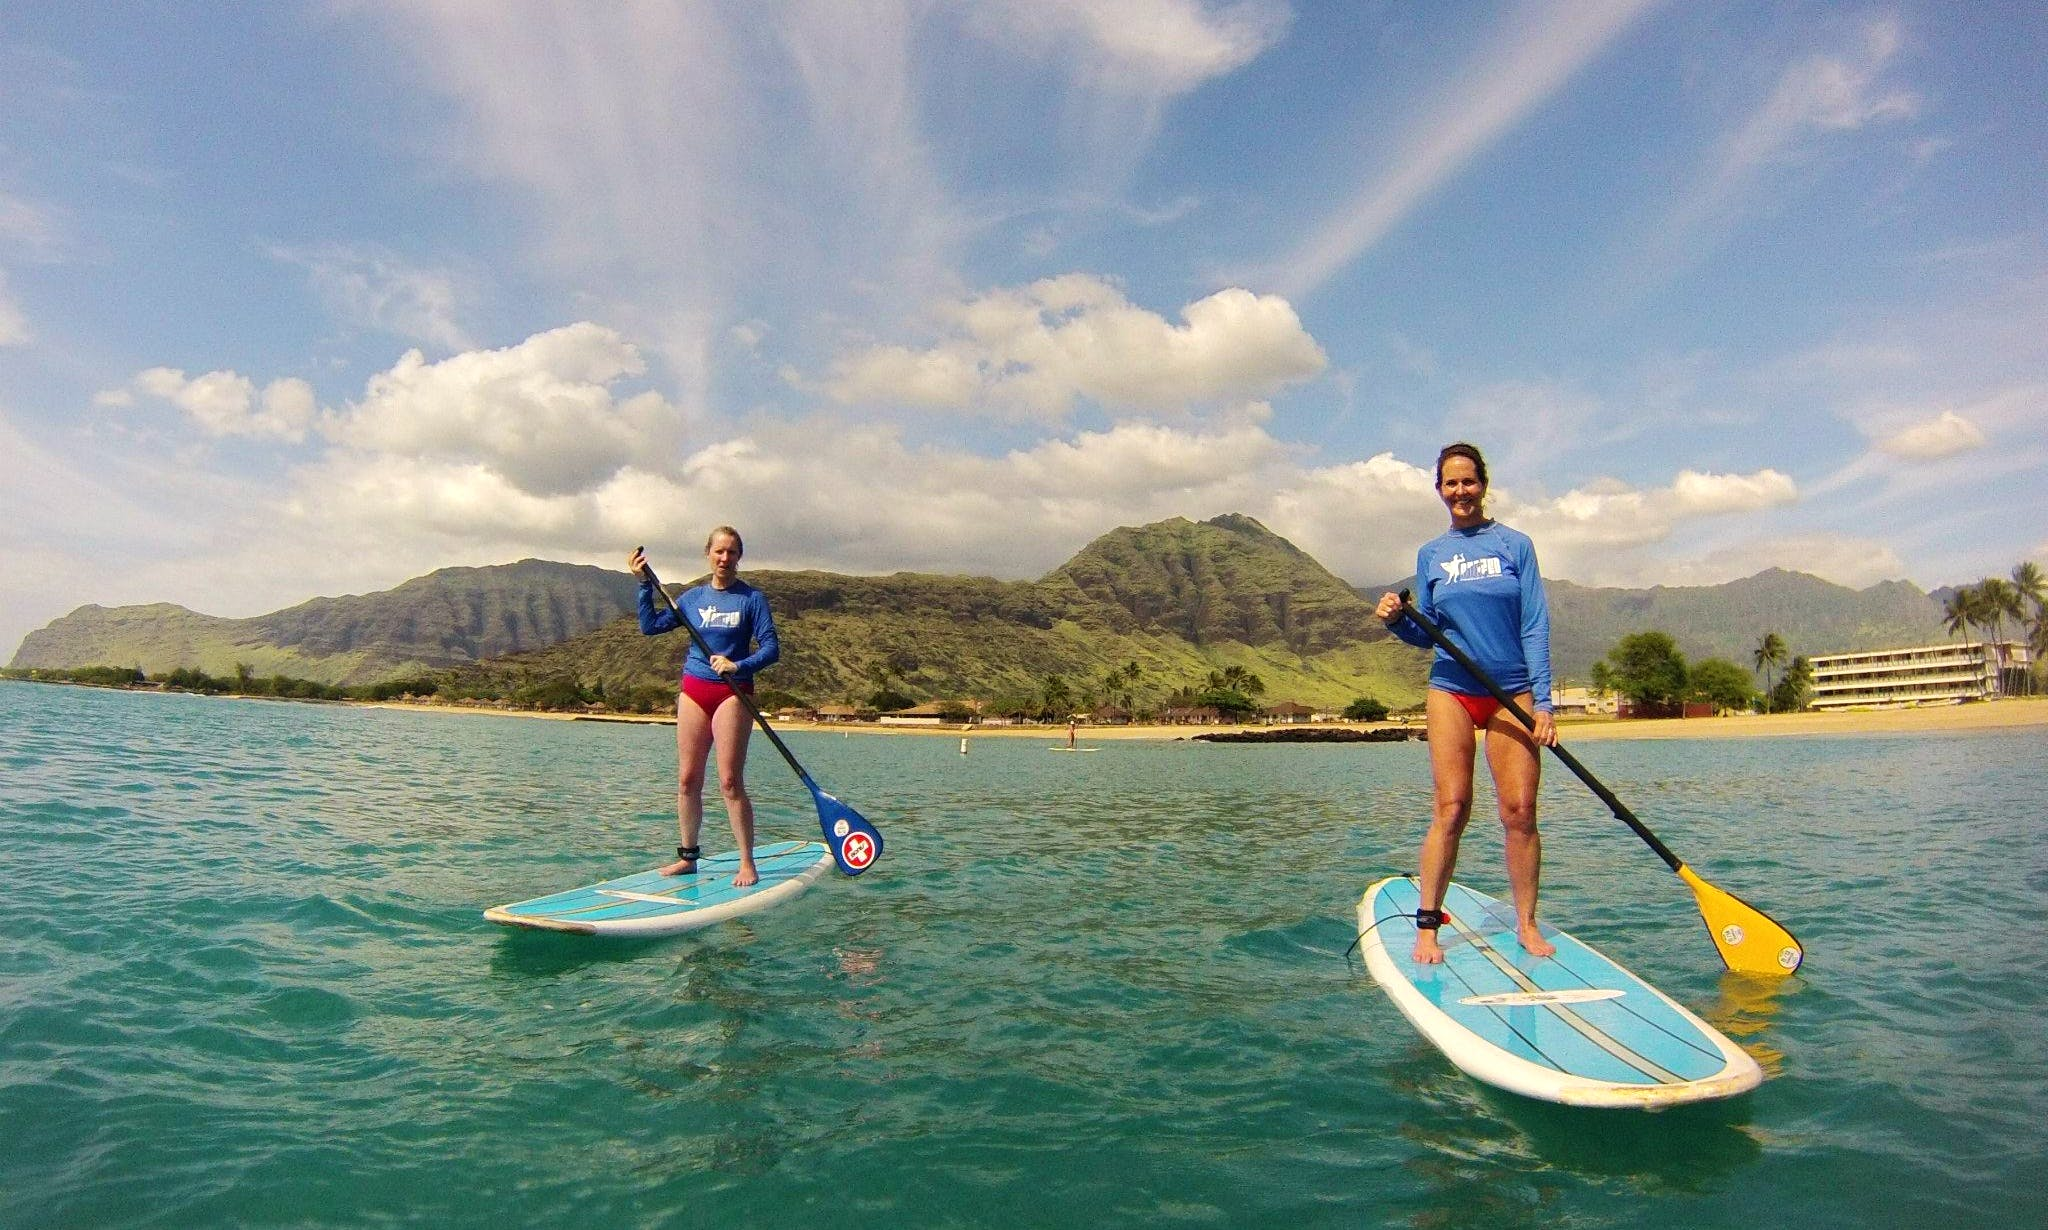 Affordable stand-up paddleboard rentals in Honolulu, Hawaii